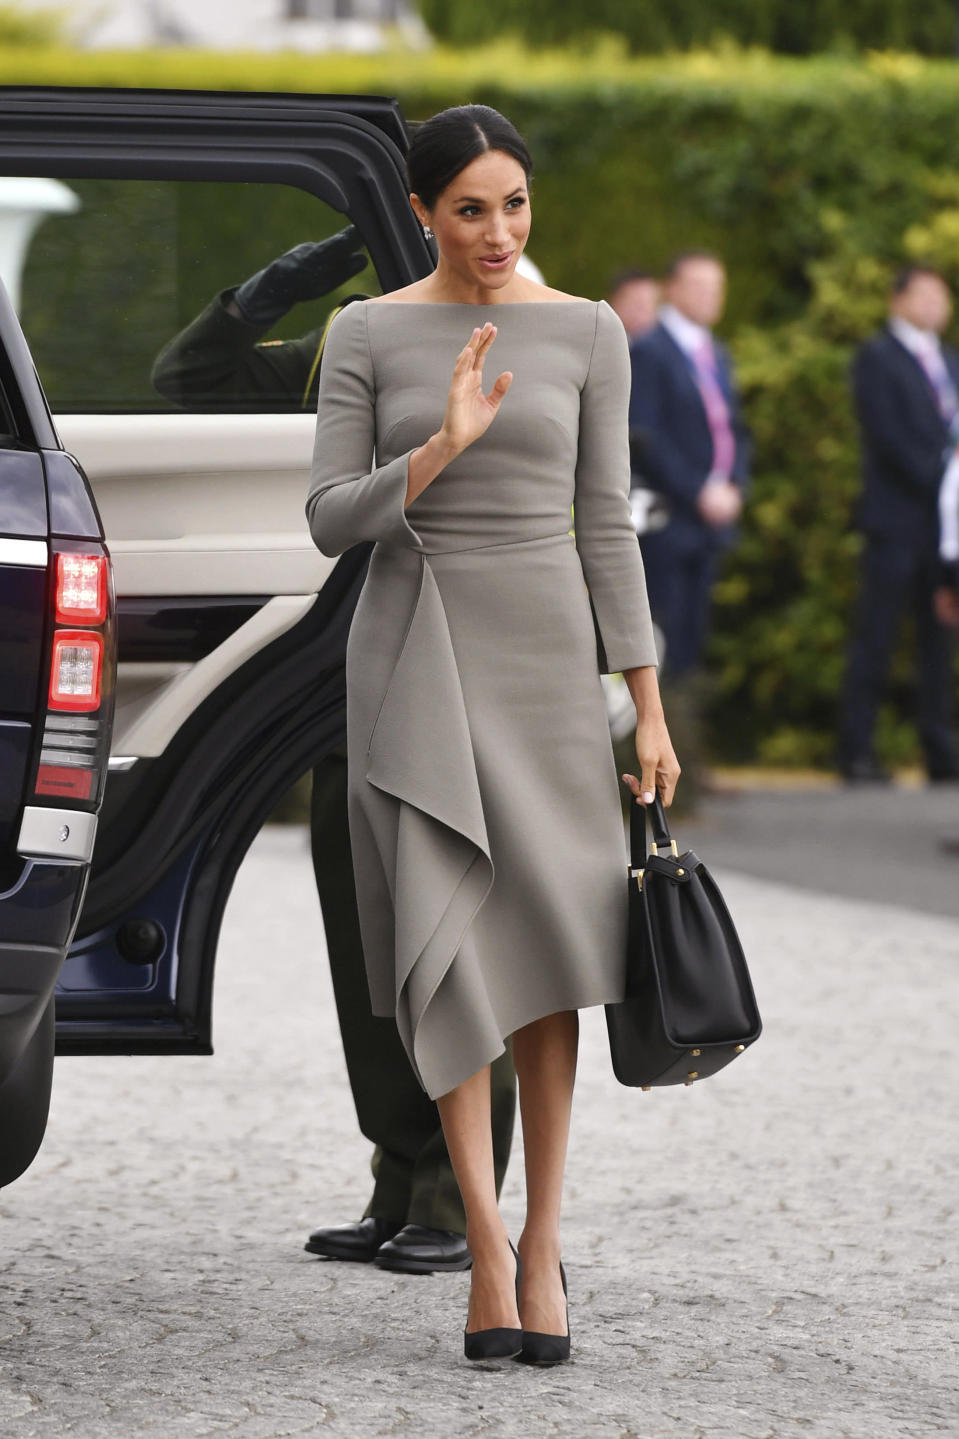 The Duchess of Sussex wore her Roland Mouret on Wednesday. (Photo: Joe Giddens/PA via AP)